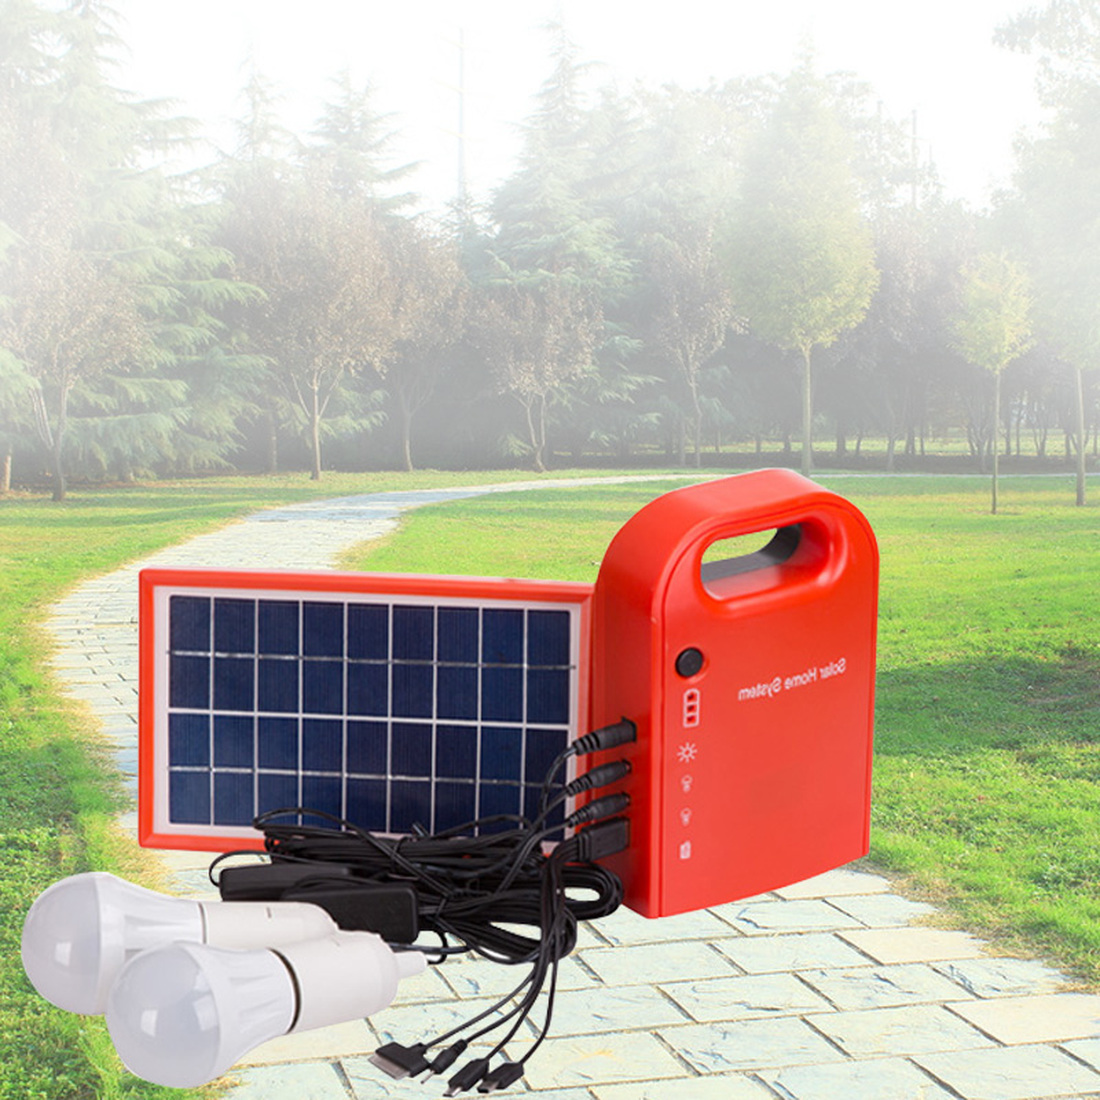 цена на Free Shipping 4 W DIY Home Solar Power Bank Solar Panel Power Generation System for Lighting Battery Mobile Phone Charger